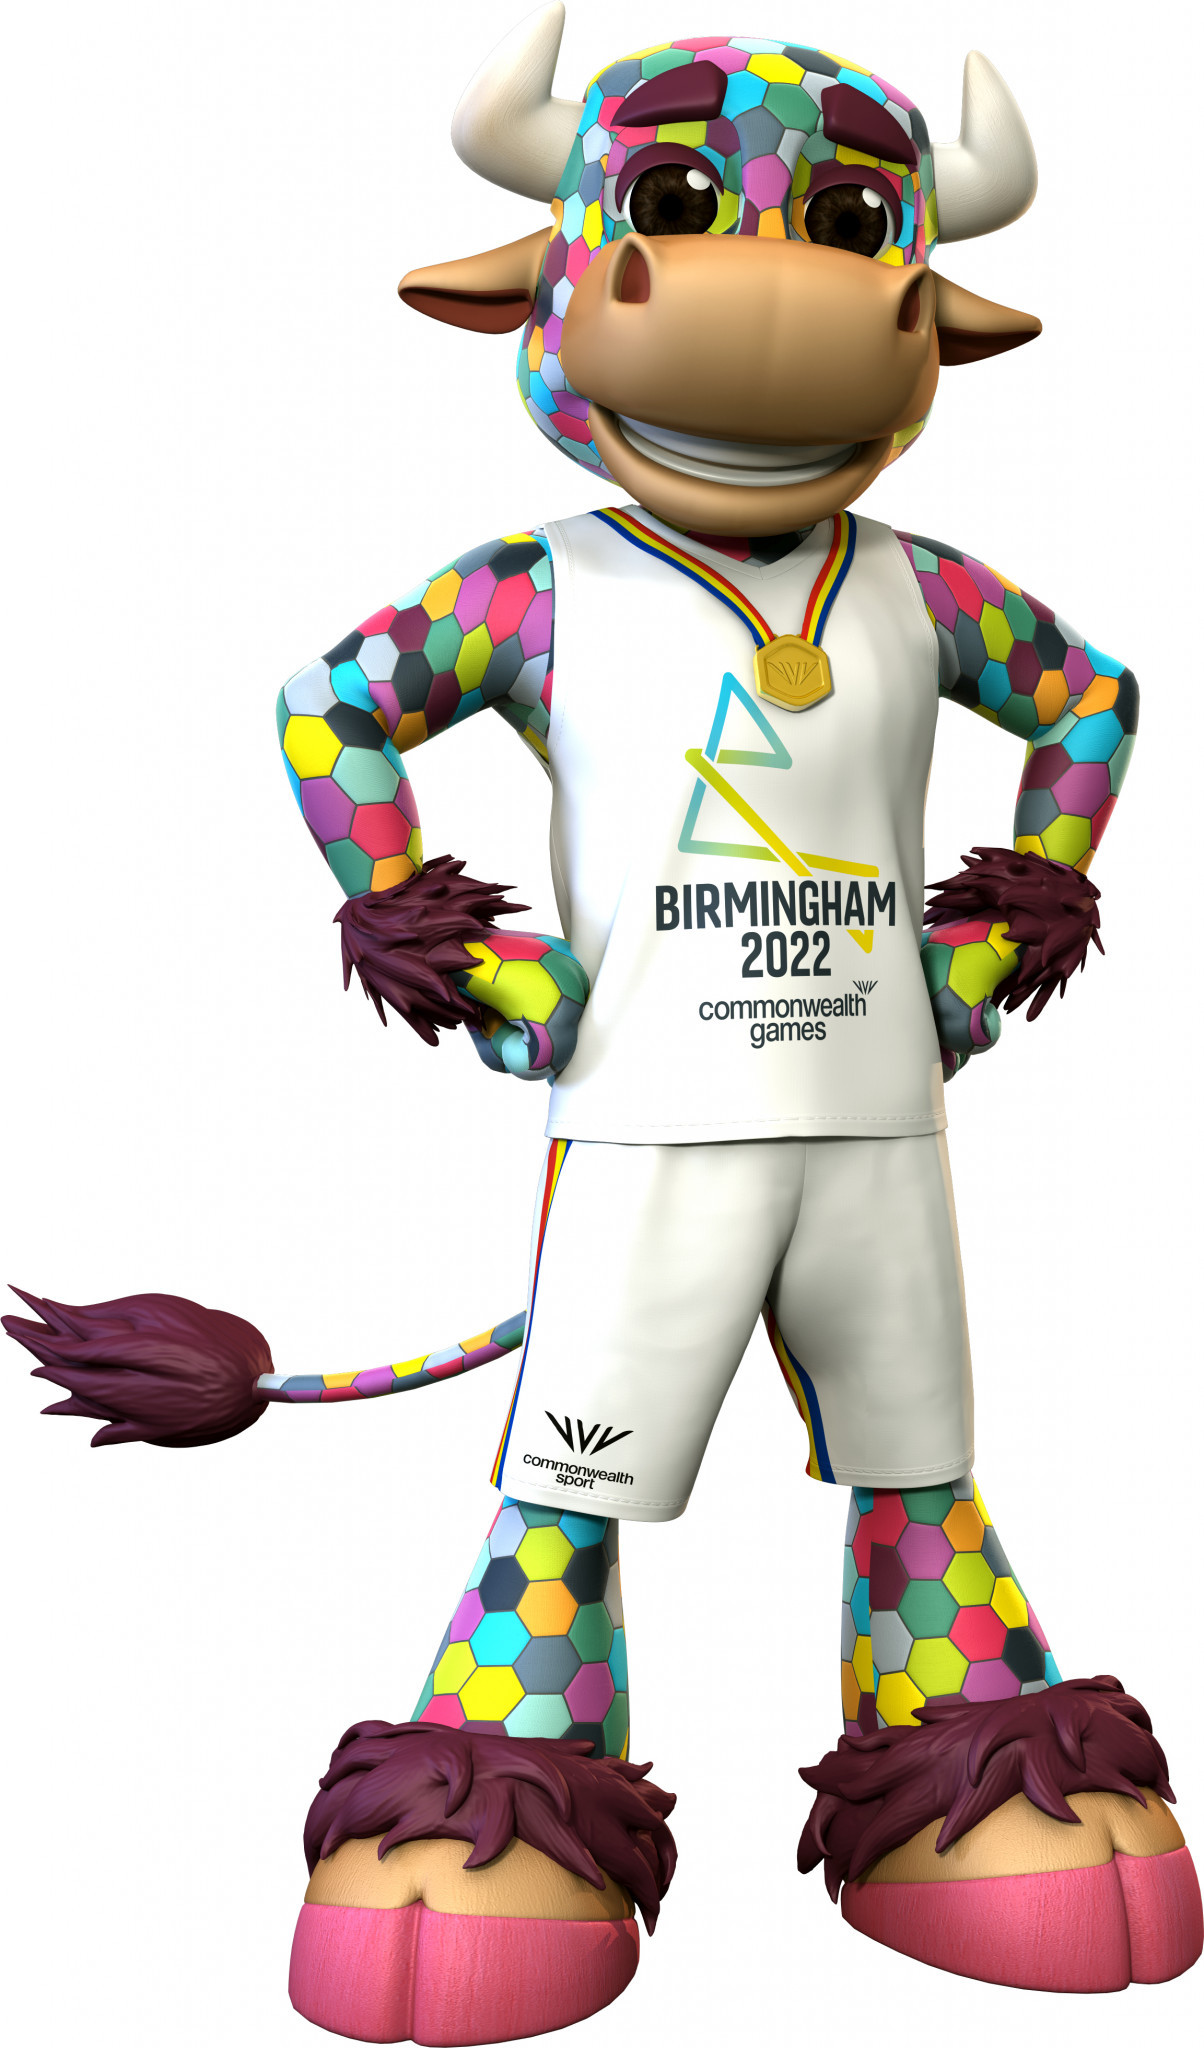 Perry is named after Perry Barr, the region in Birmingham where Alexander Stadium is located, and who draws his inspiration from the famous Bull Ring in the English city ©Birmingham 2022